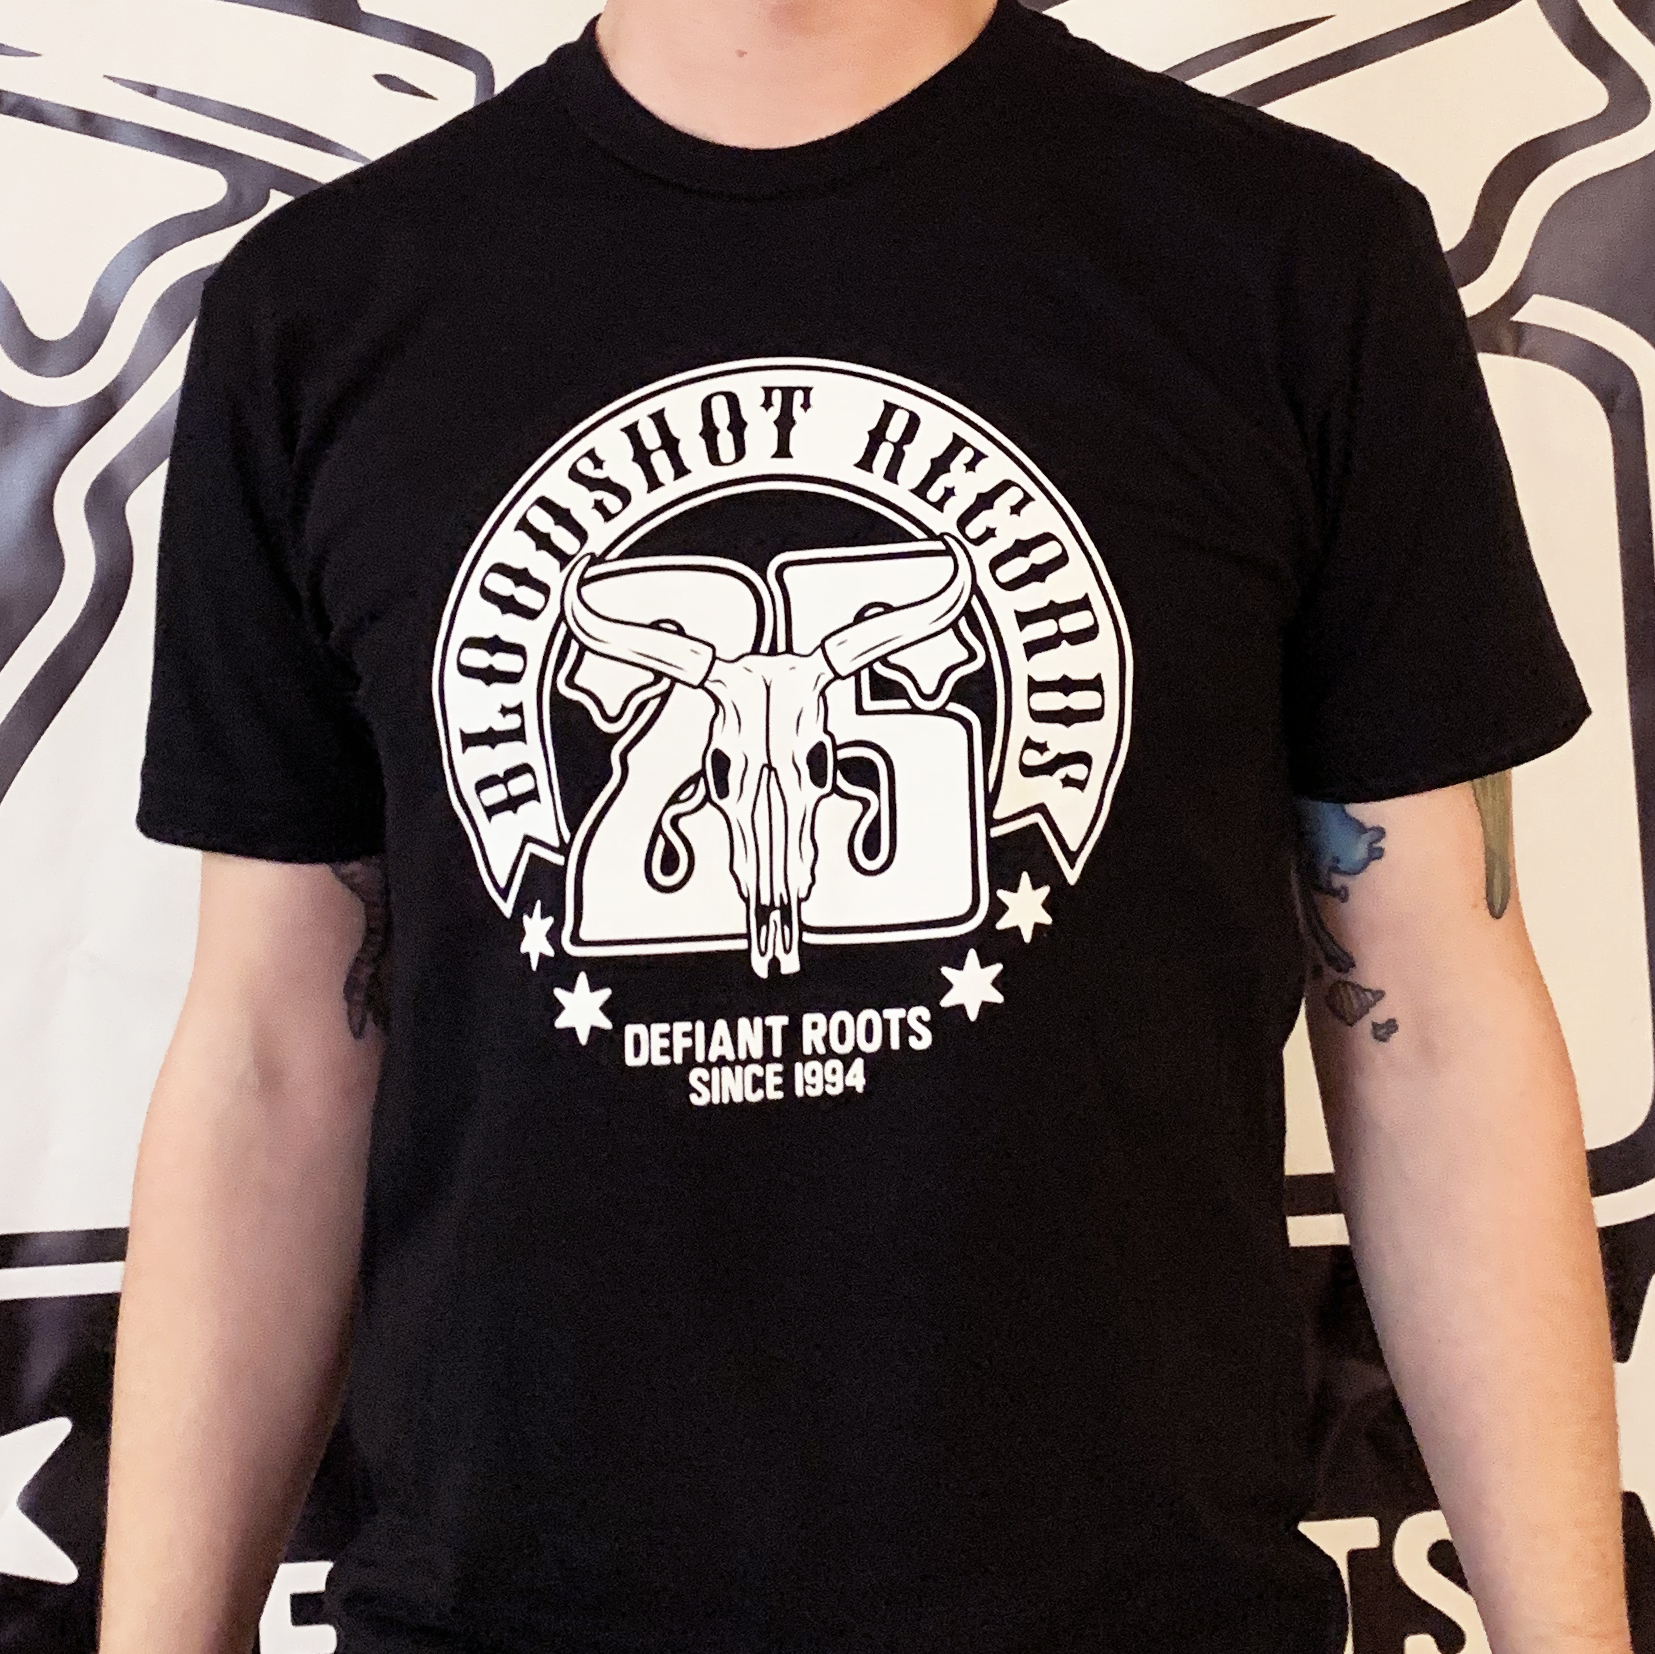 Bloodshot Records 25th Anniversary T-Shirt